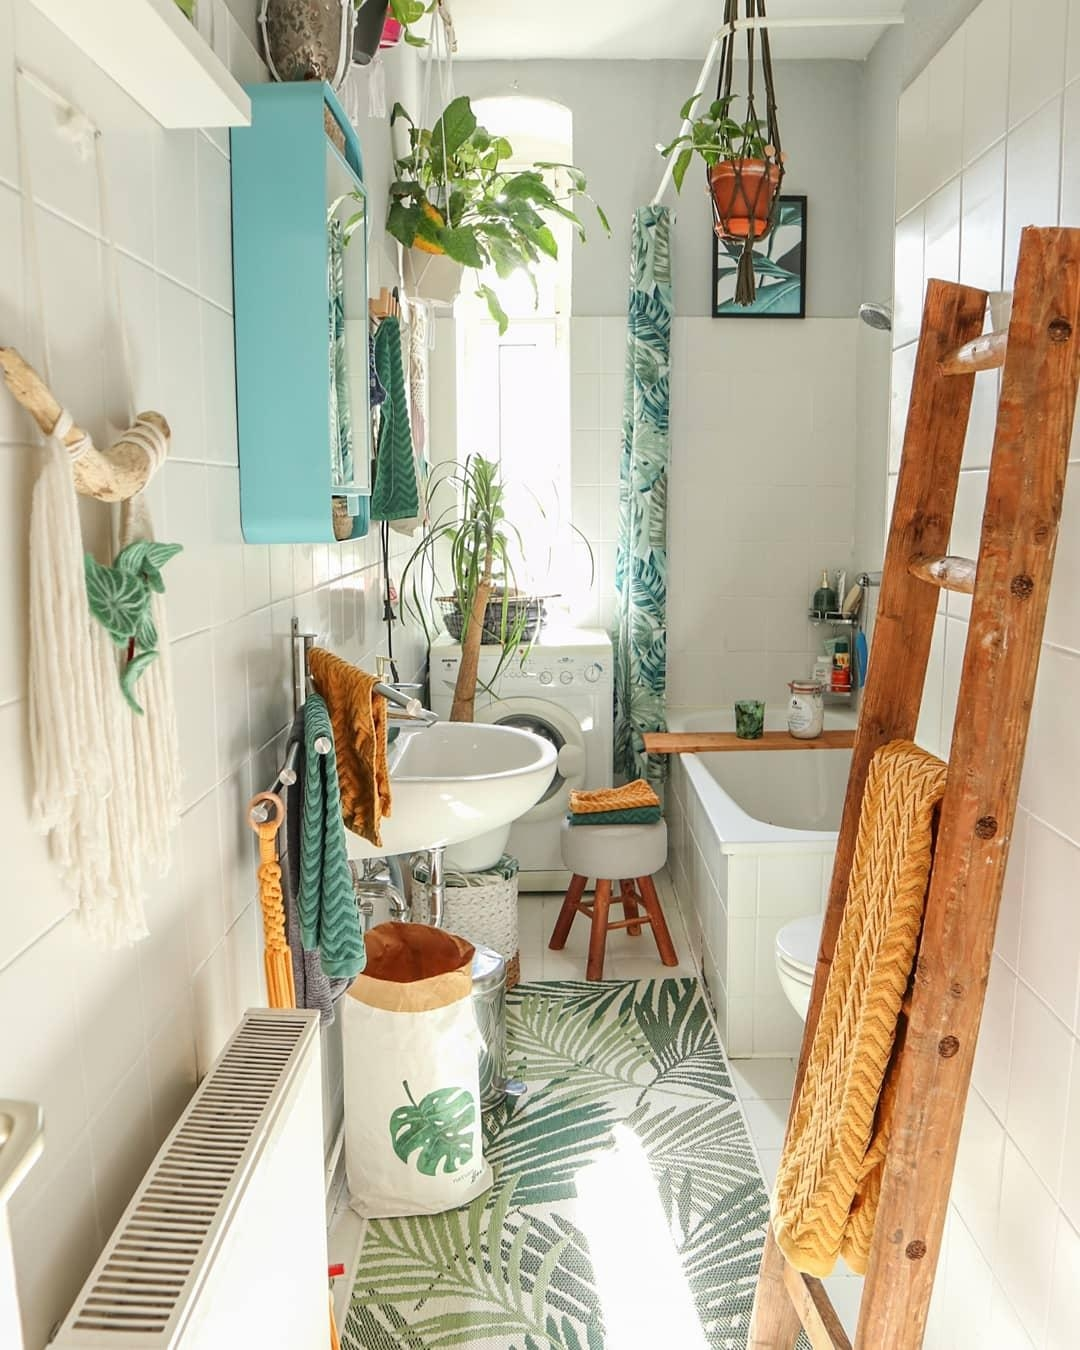 Plantlover bathroom altbaubad  4989d537 2513 4443 a691 1042681d9db4